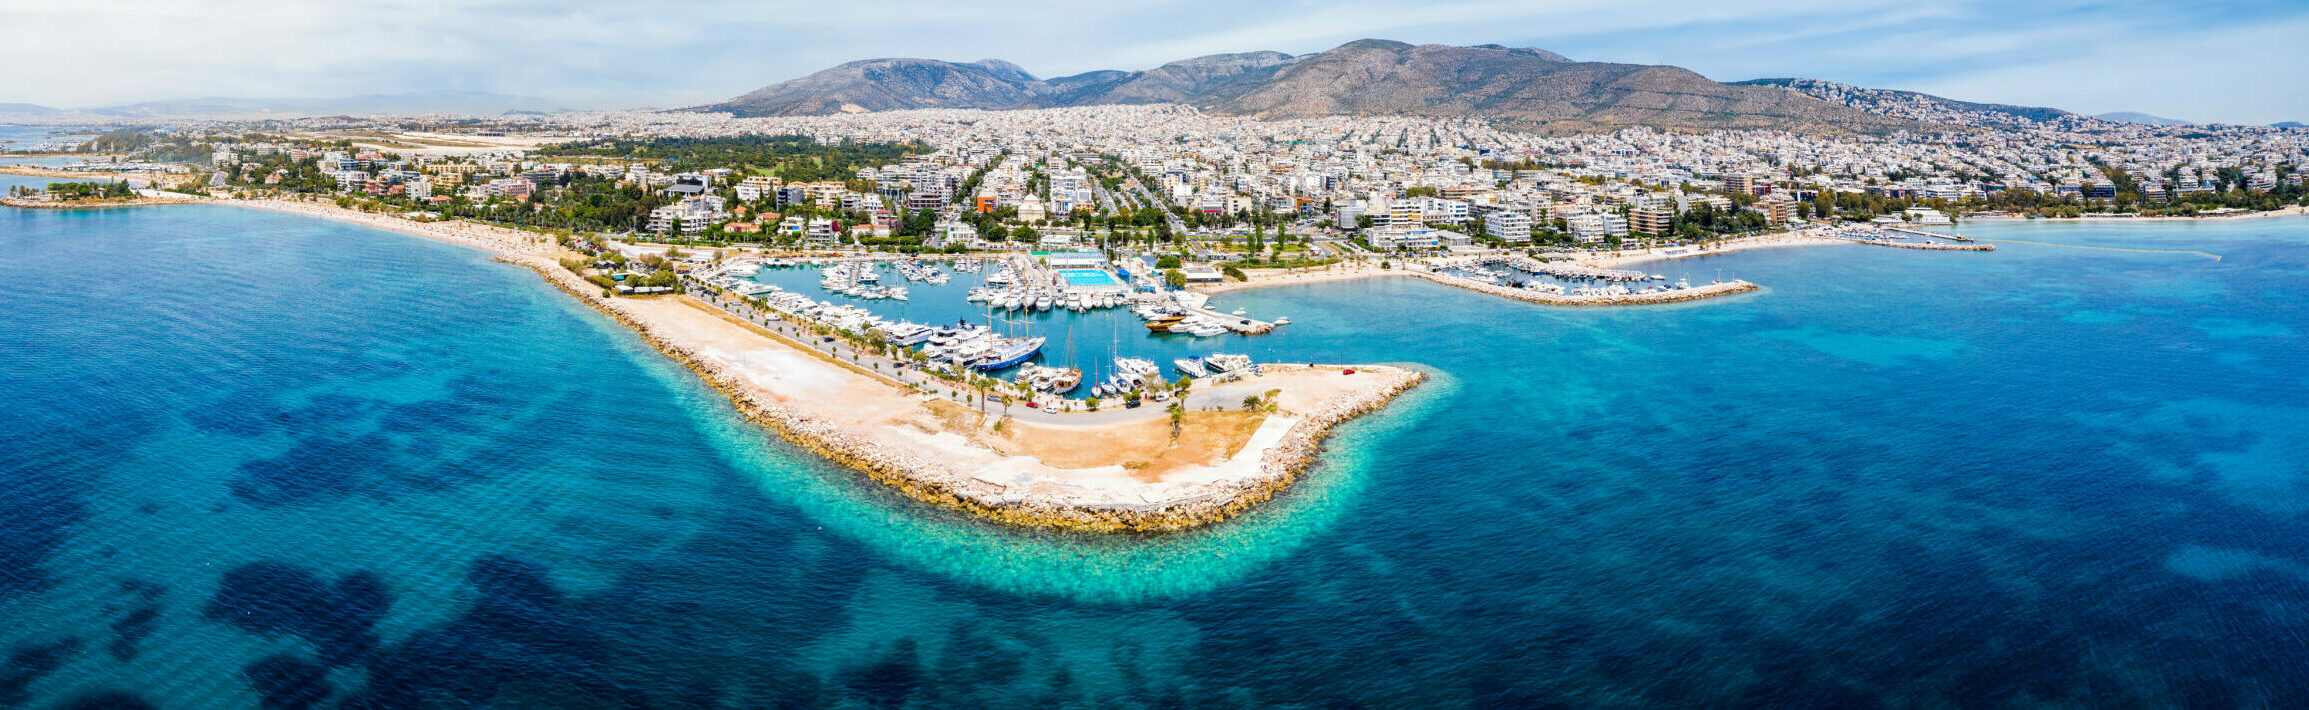 Aixoni: Where Athenians went to swim in the 1900s